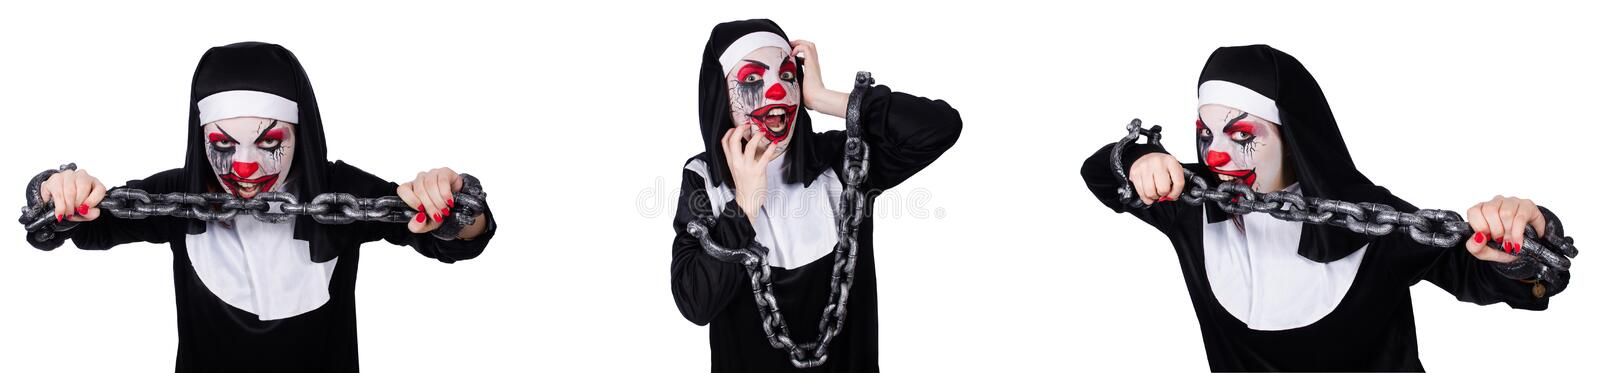 The weird female nun with shackles isolated on white stock photography